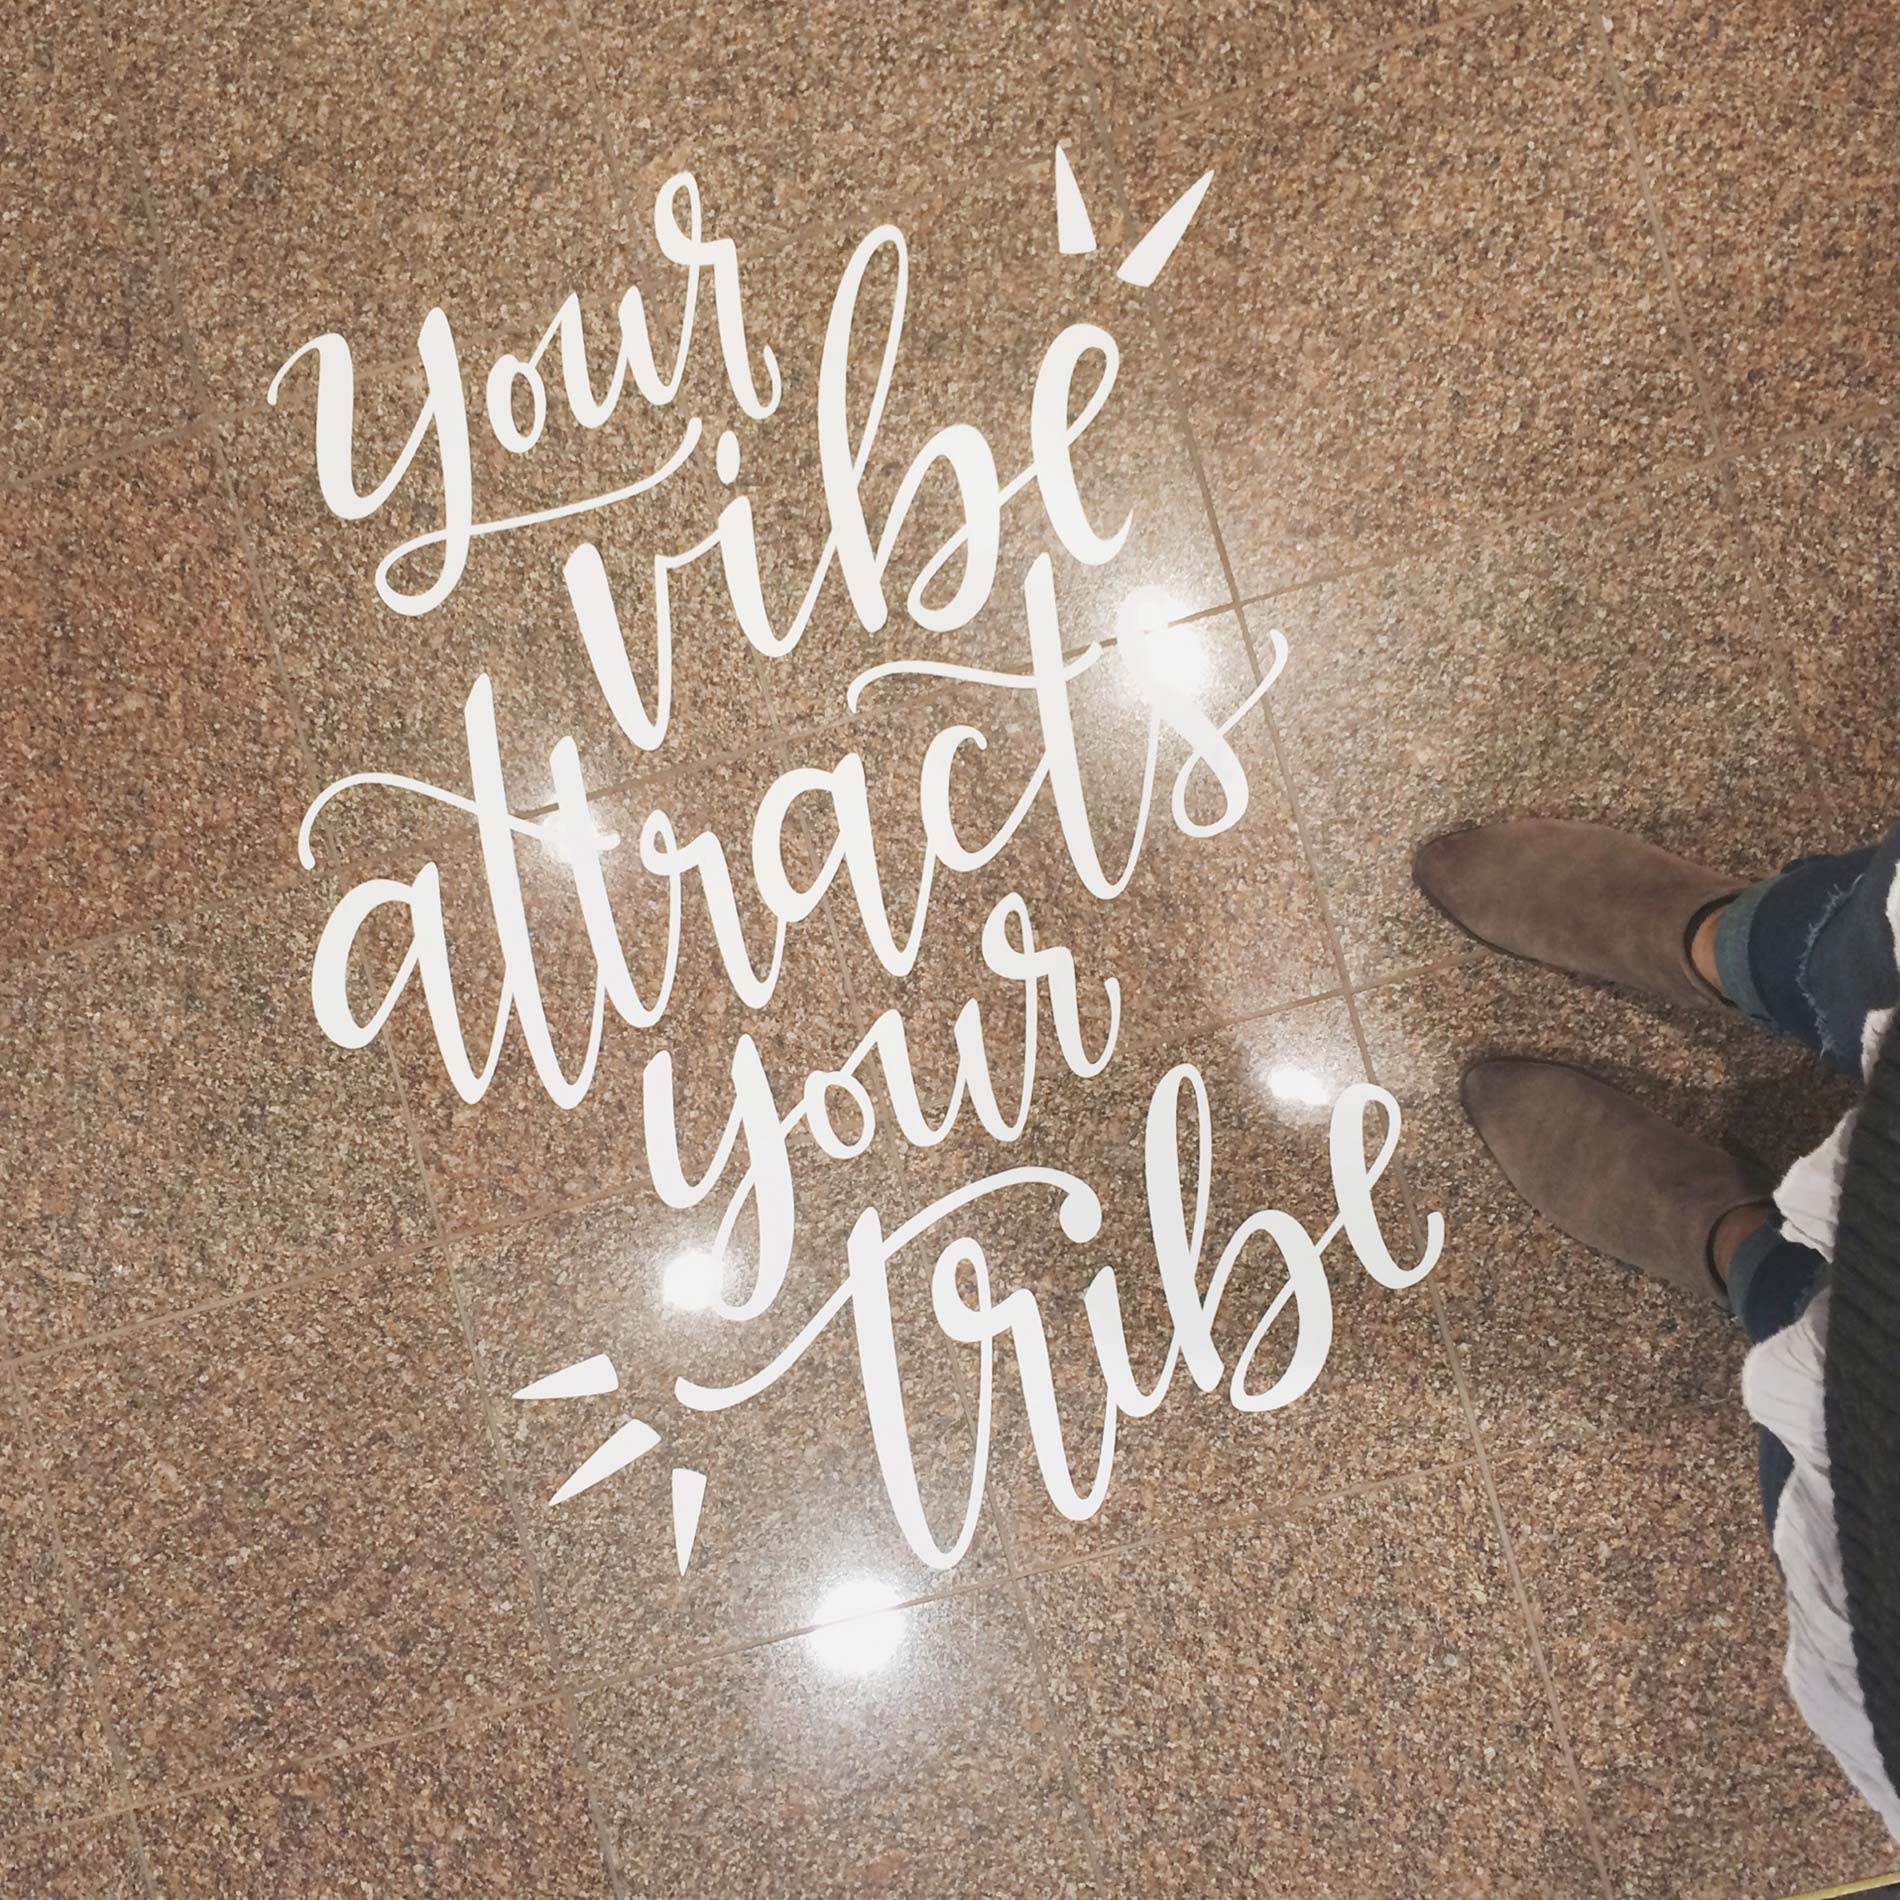 Your-Vibe-Attracts-Tribe-BlogPodium